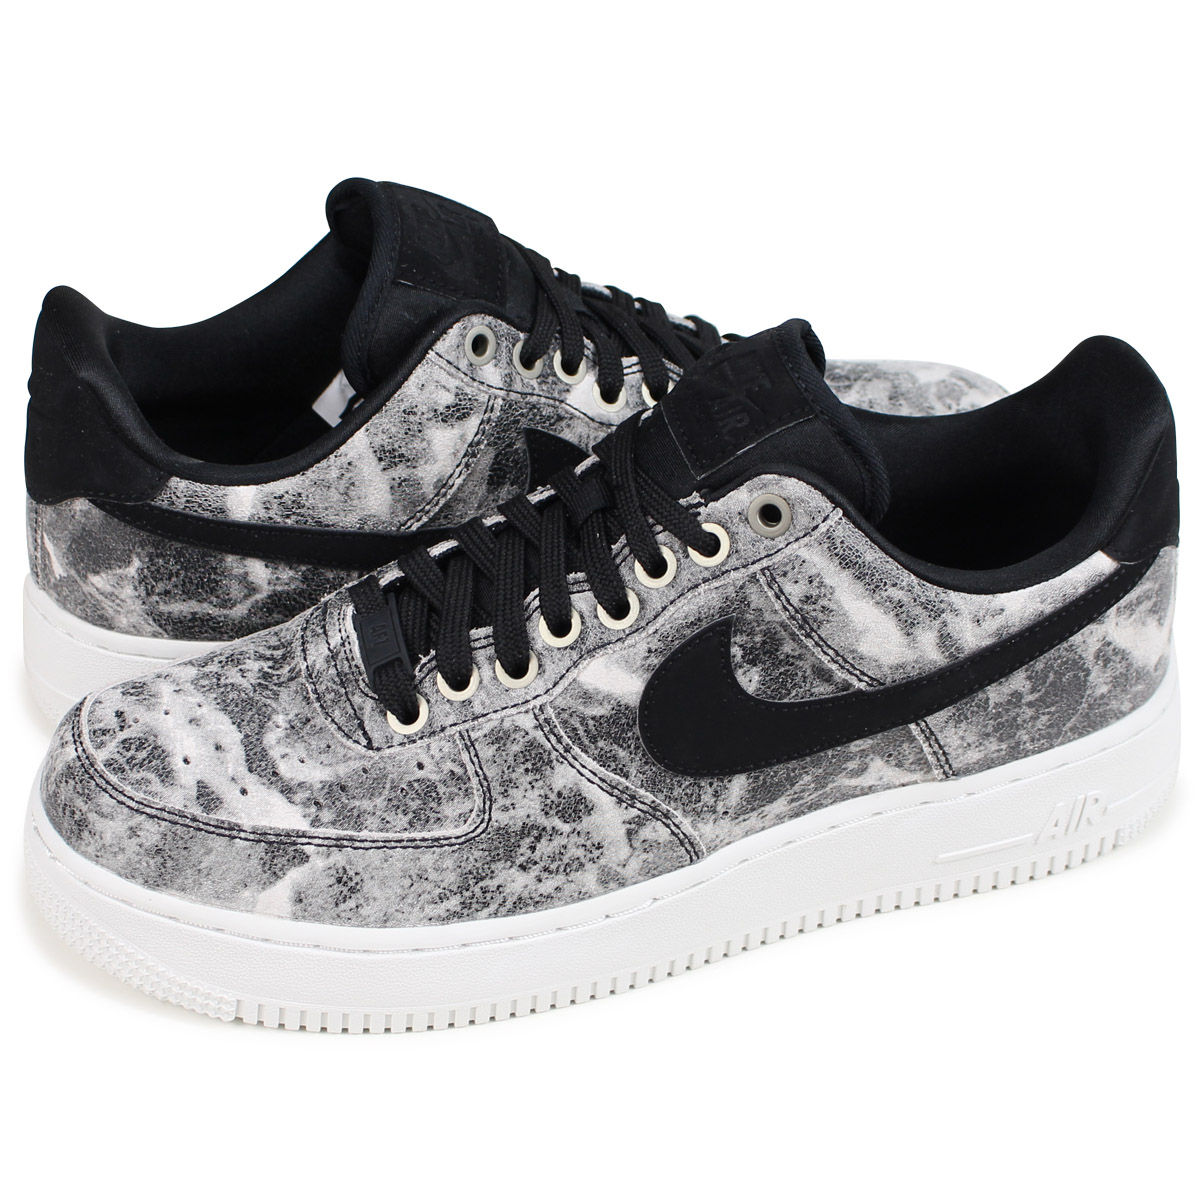 5904d3b899c7 NIKE WMNS AIR FORCE 1 07 LXX Nike air force 1 lady s men s sneakers  AO1017-001 black  load planned Shinnyu load in reservation product 8 18  containing